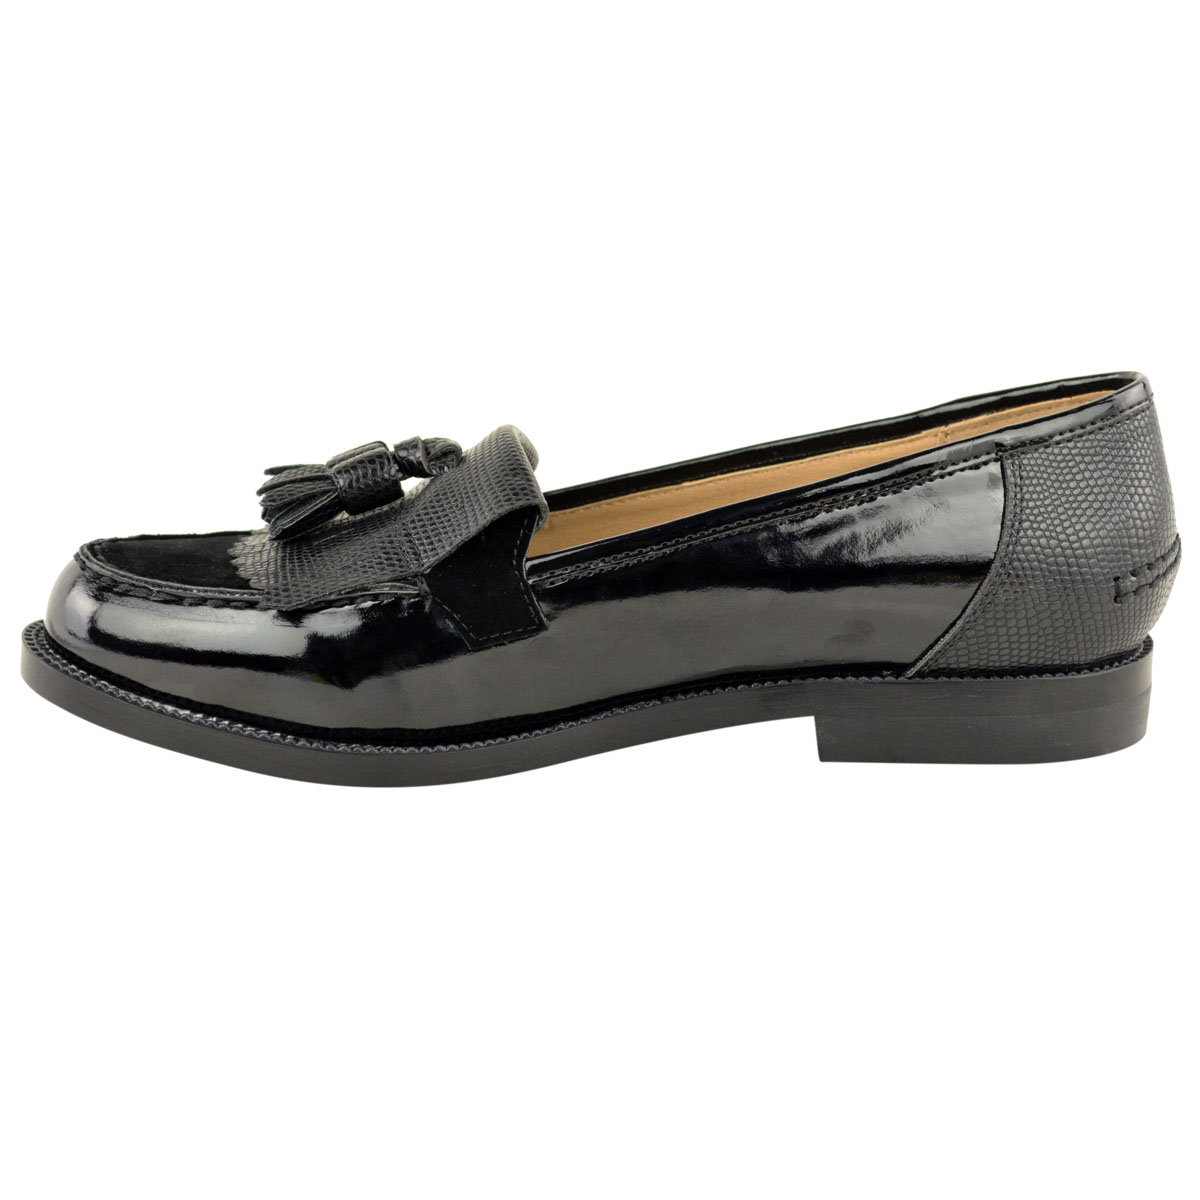 Womens-Ladies-Loafers-Brogues-Pumps-Casual-School-Office-Comfy-Work-Flats-Size thumbnail 40